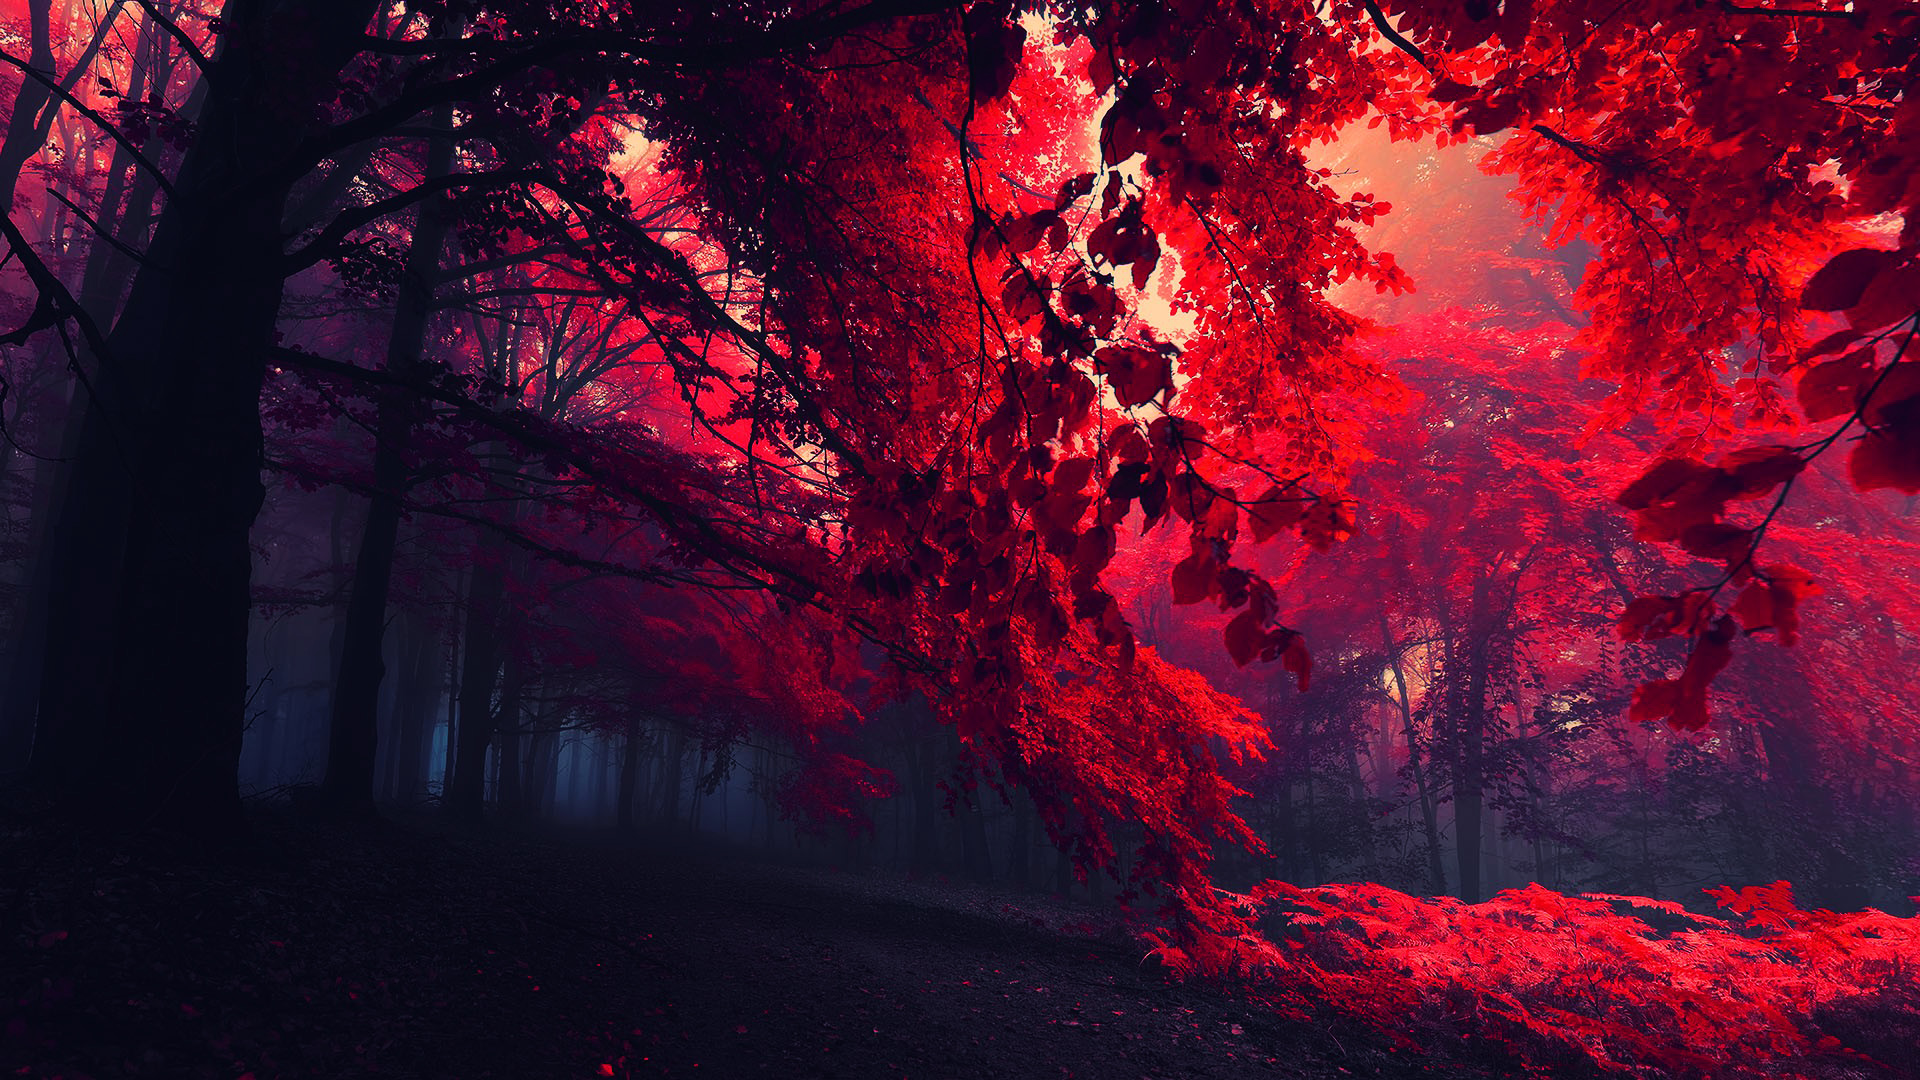 Dark red wallpaper hd wallpapersafari - Decorative trees with red leaves amazing contrasts ...